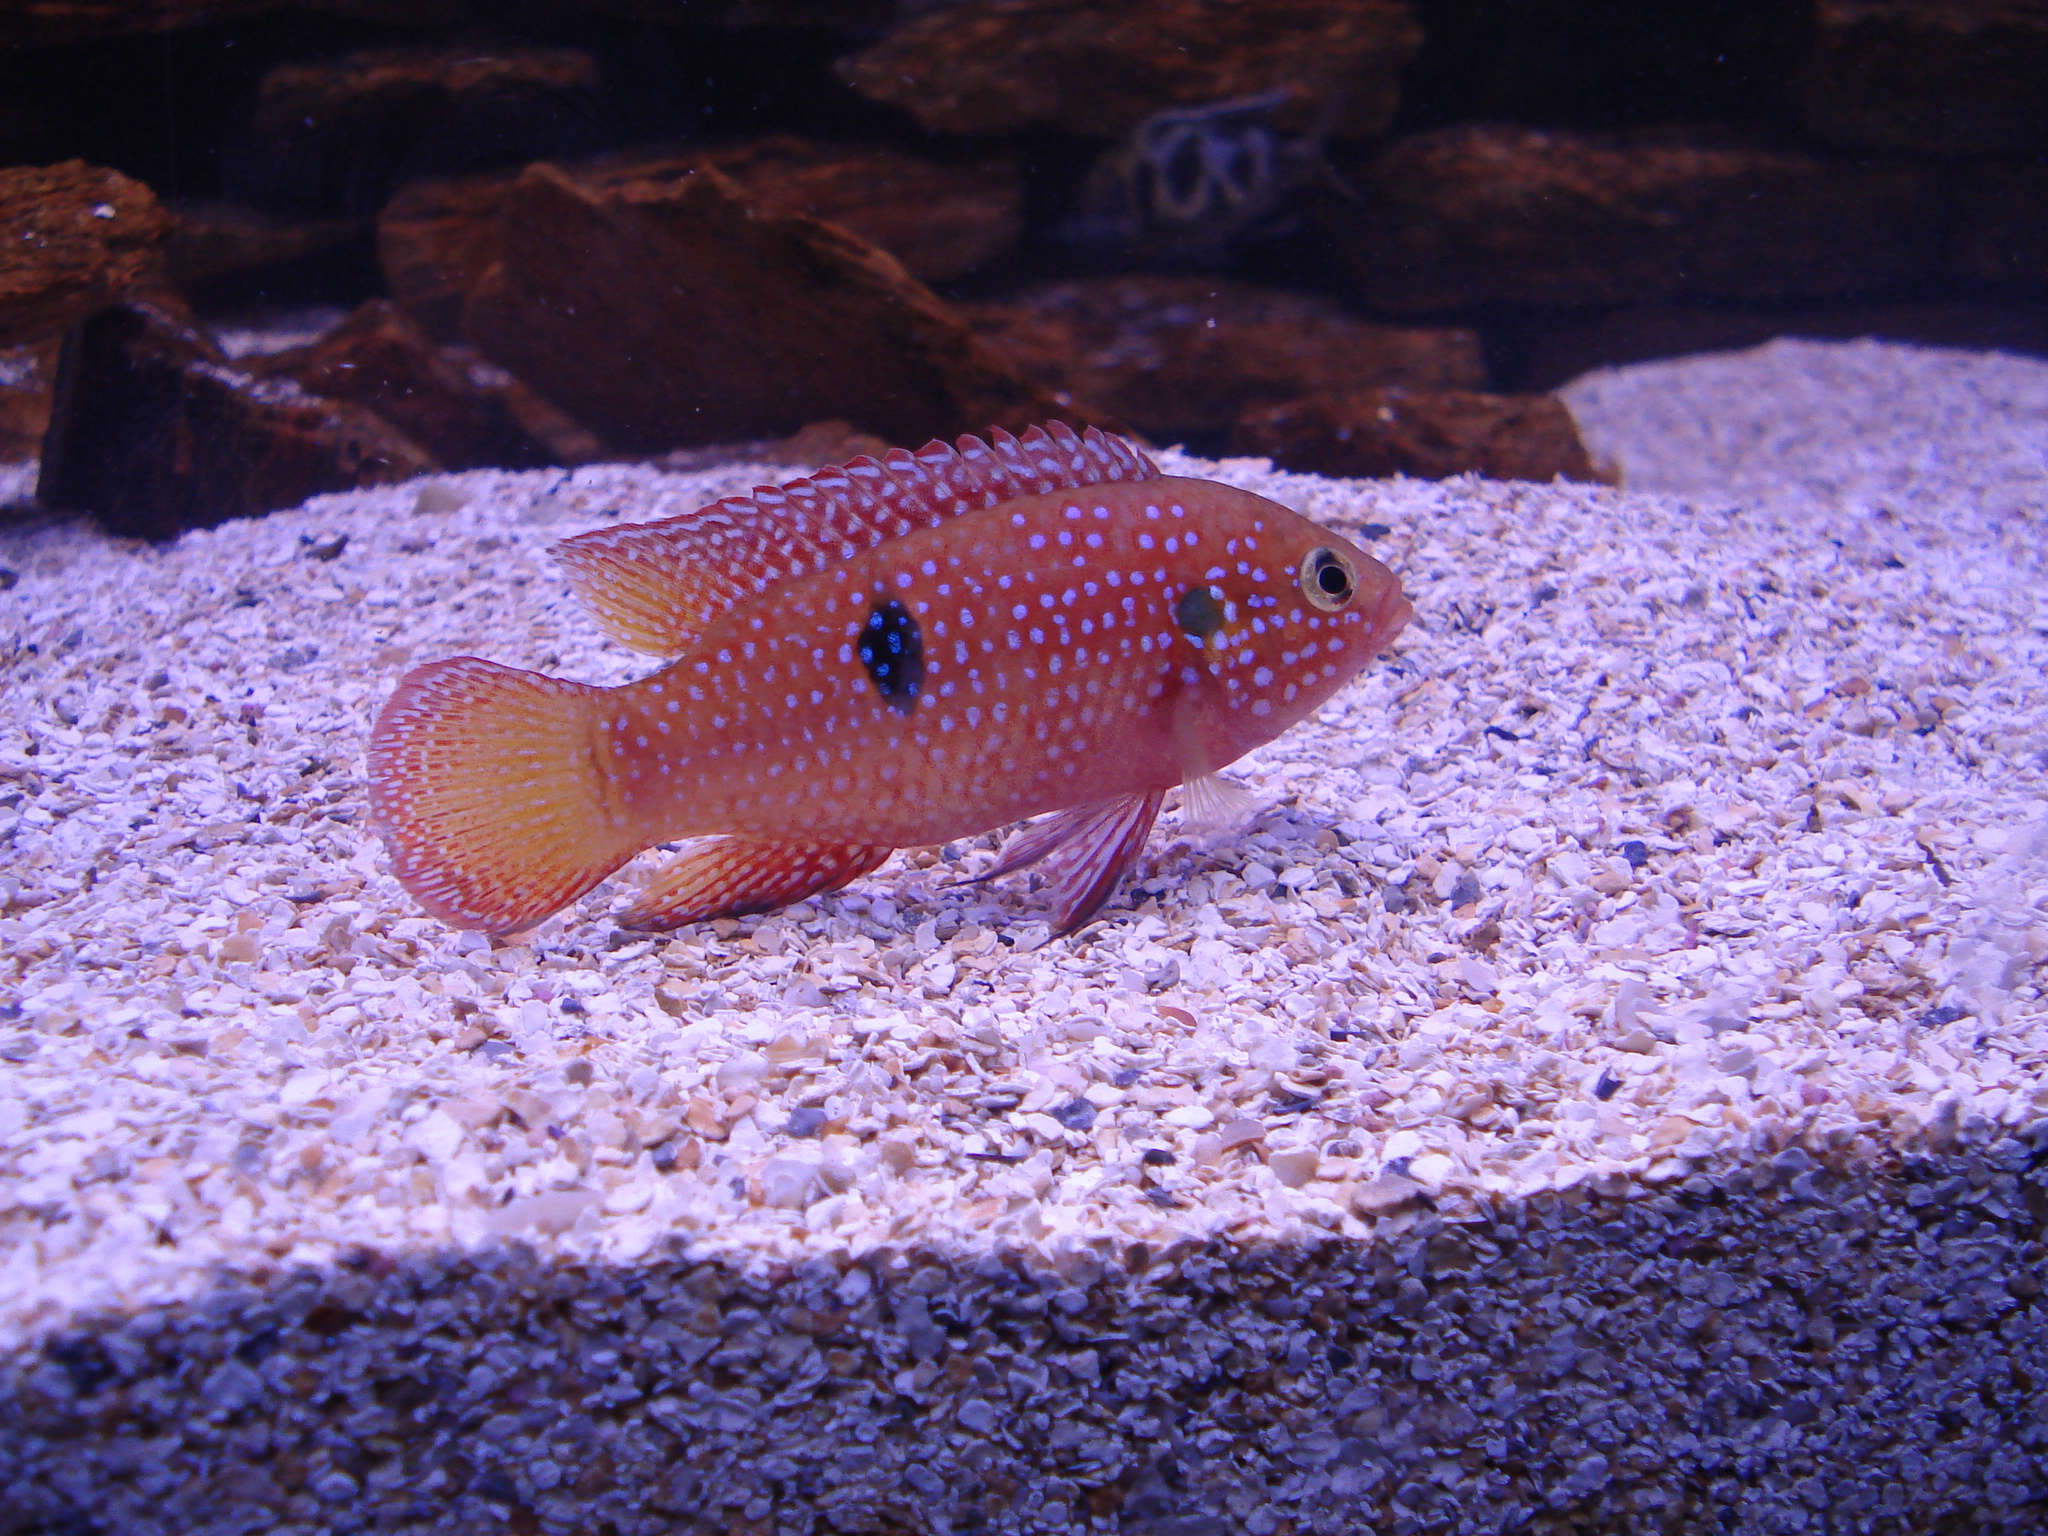 Freshwater jewel fish - The Jewel Cichlid Is A Feisty Cichlid From Africa